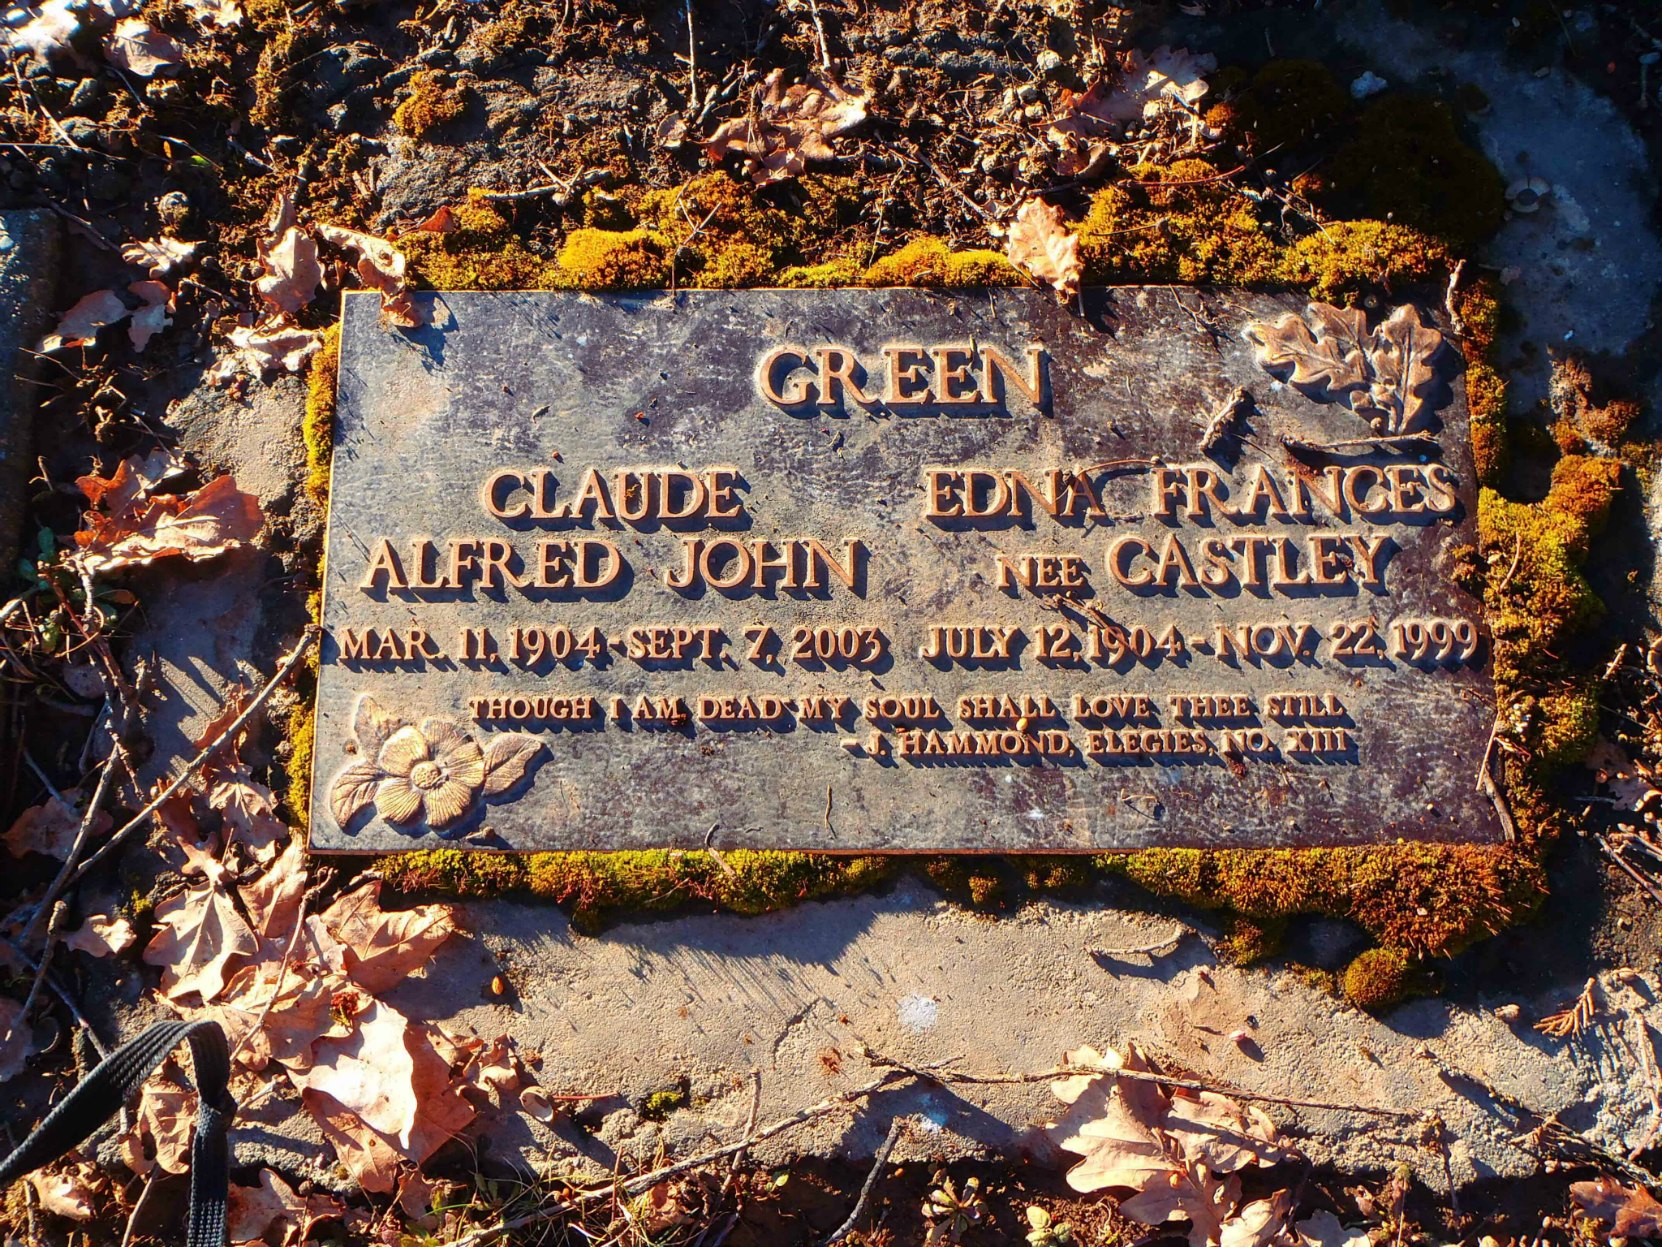 Claude and Edna Green grave marker, St. Mary's Somenos Anglican Cemetery